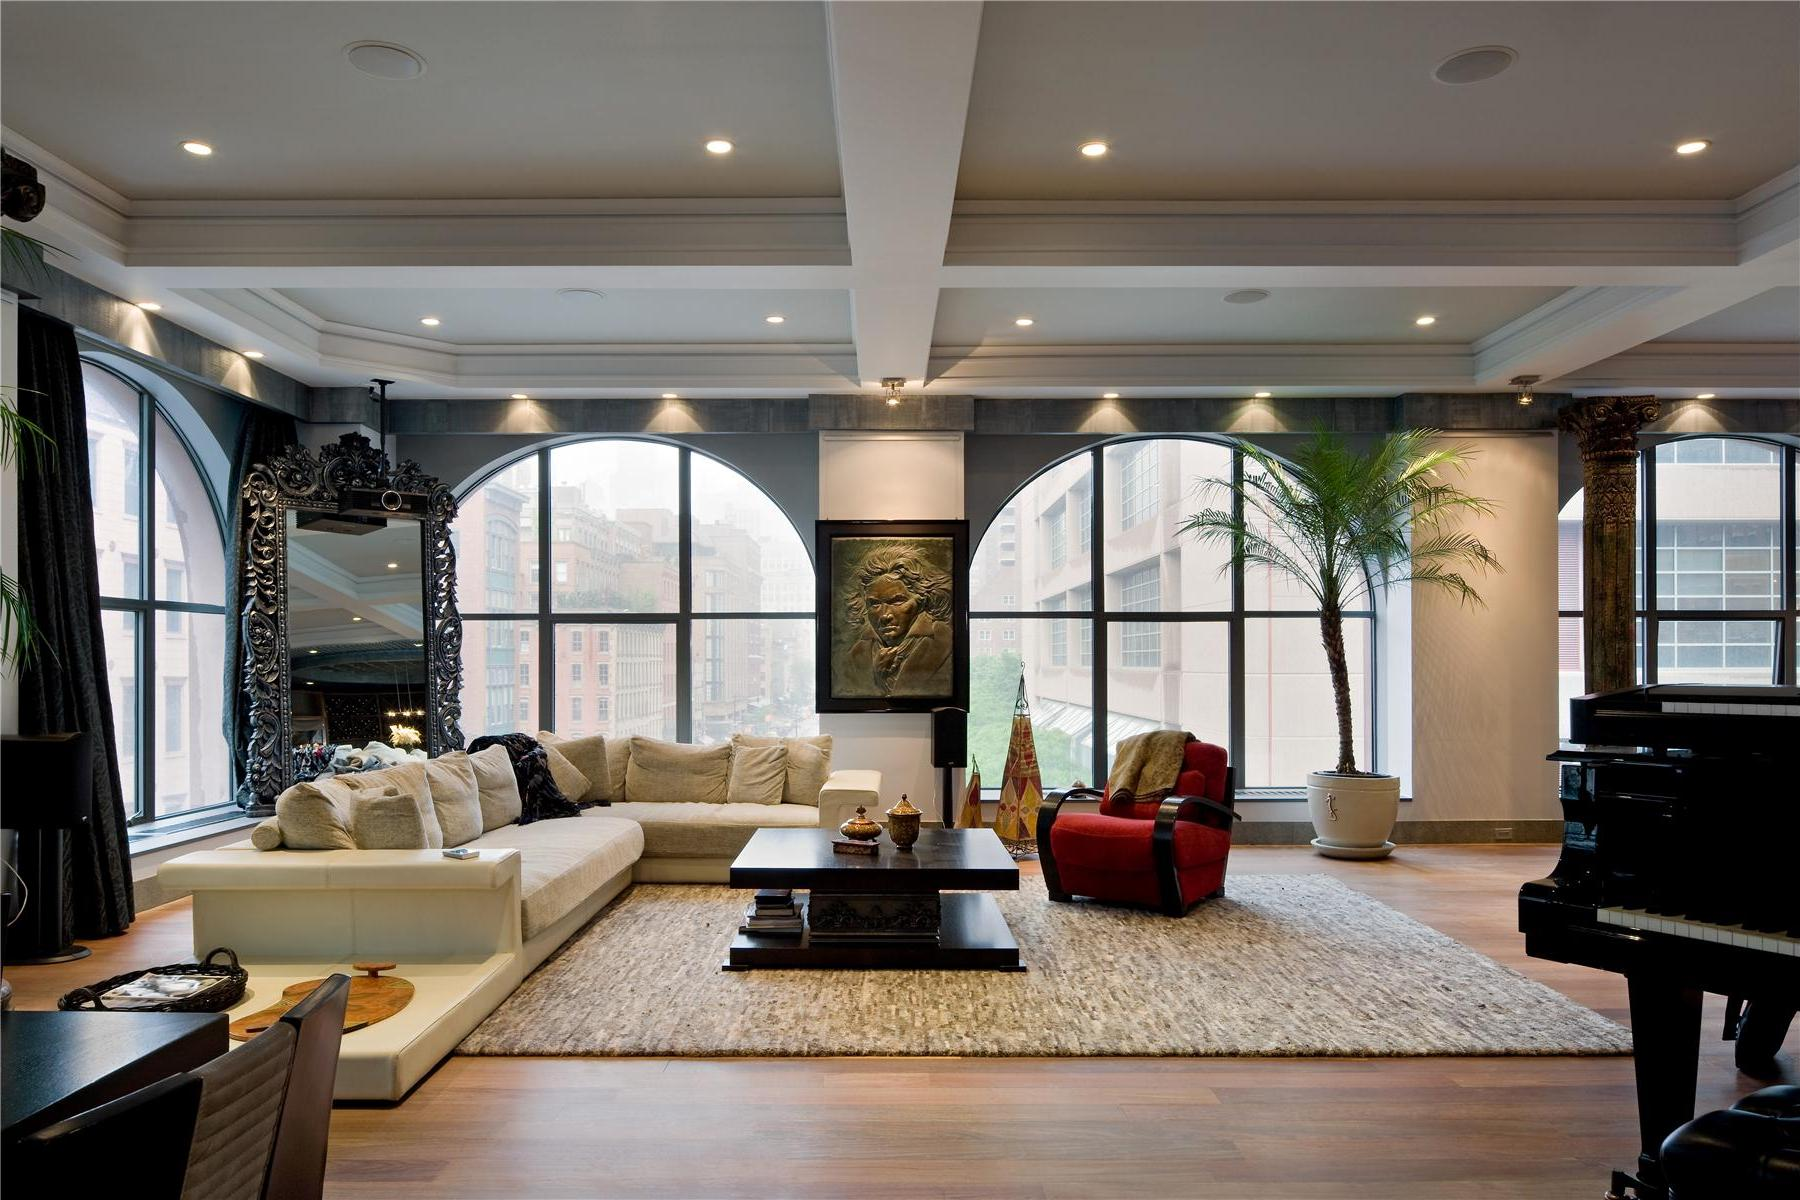 Two Luxurious Lofts On Sale In Tribeca New York